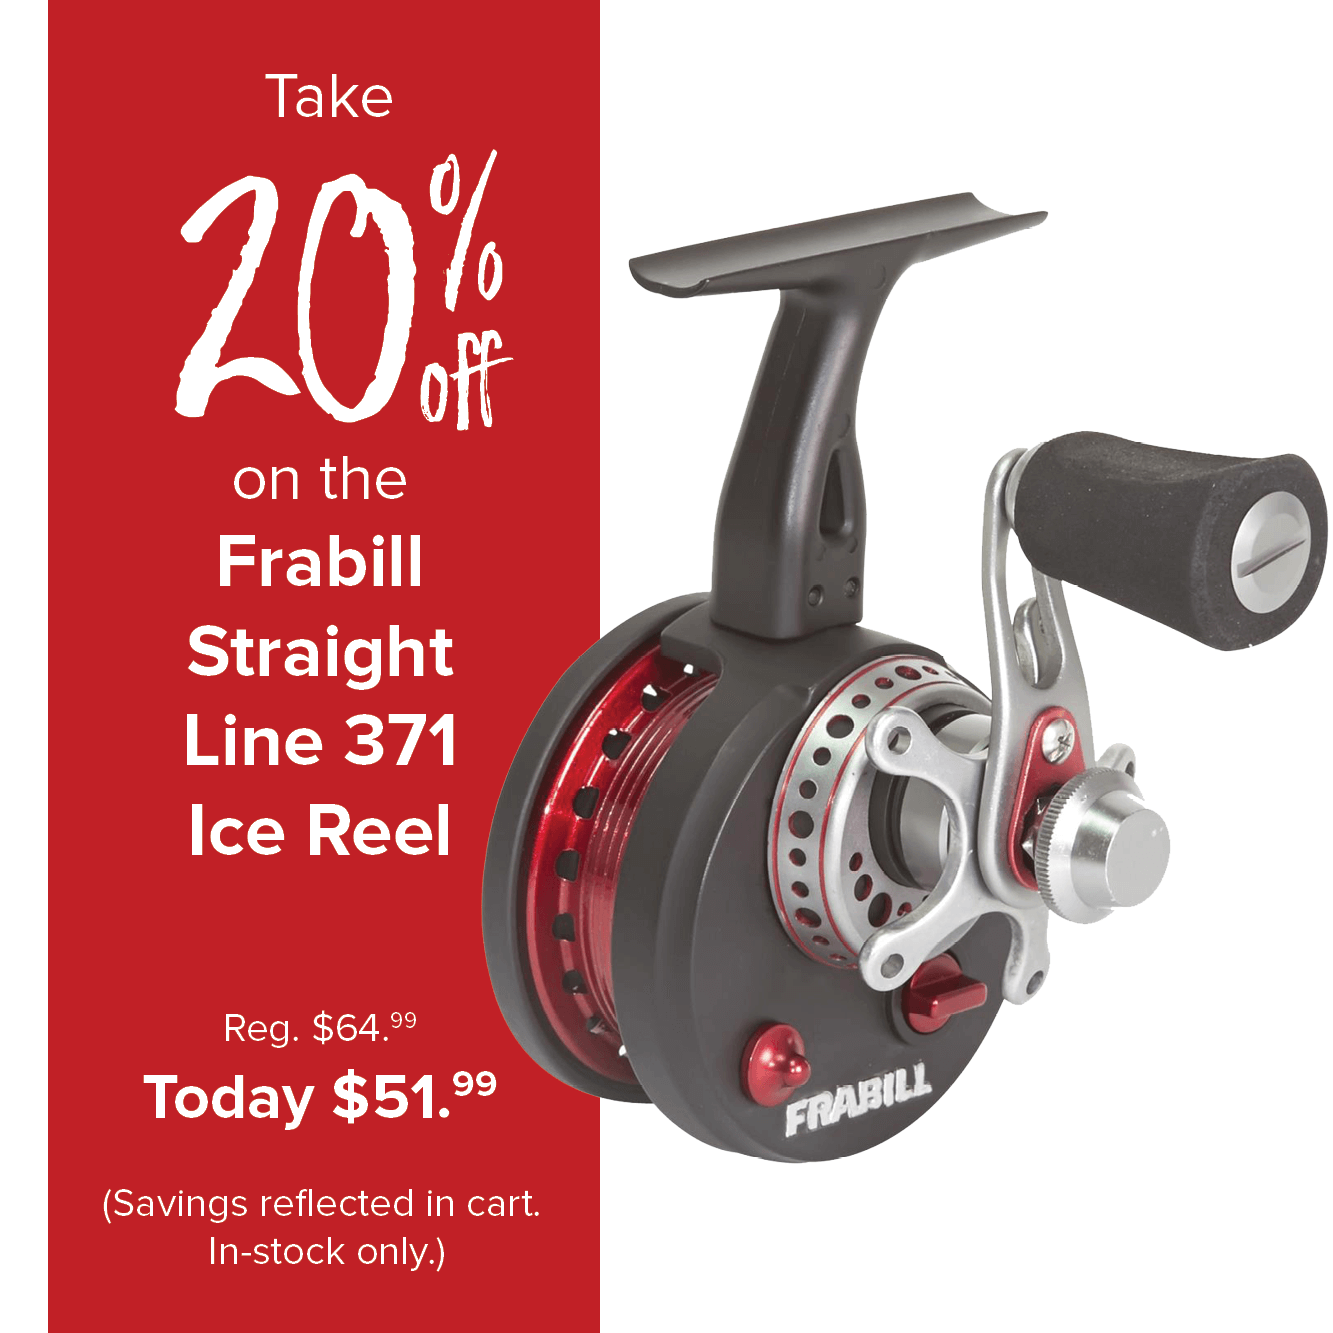 Save 20% on the Frabill Straight Line 371 Ice Reel